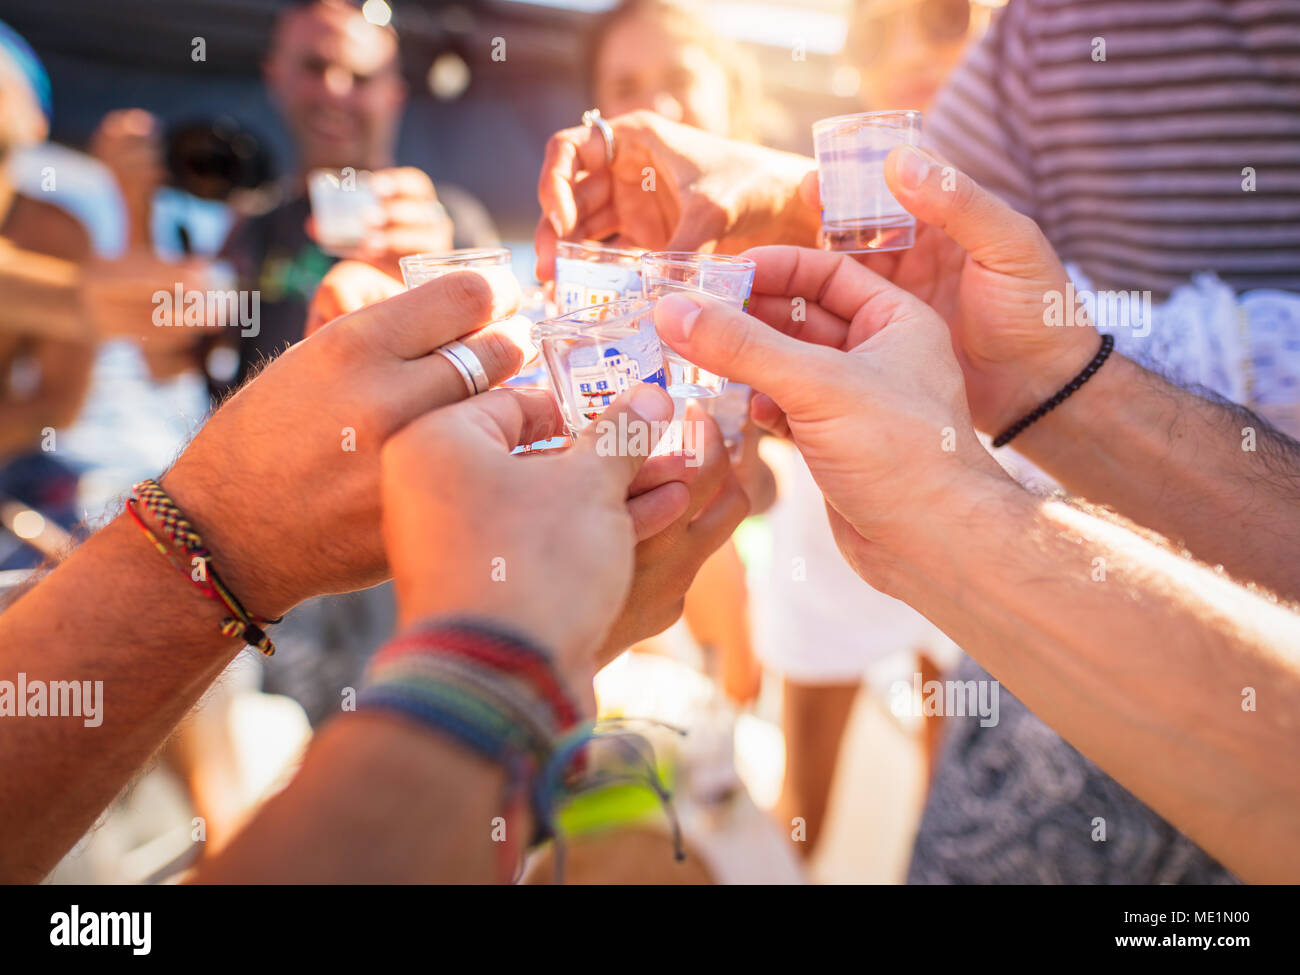 Closeup photo of a men hands with glass full of alcoholic drink, speaking toast, cheers, celebrating holiday, open air party, happy summer vacation - Stock Image